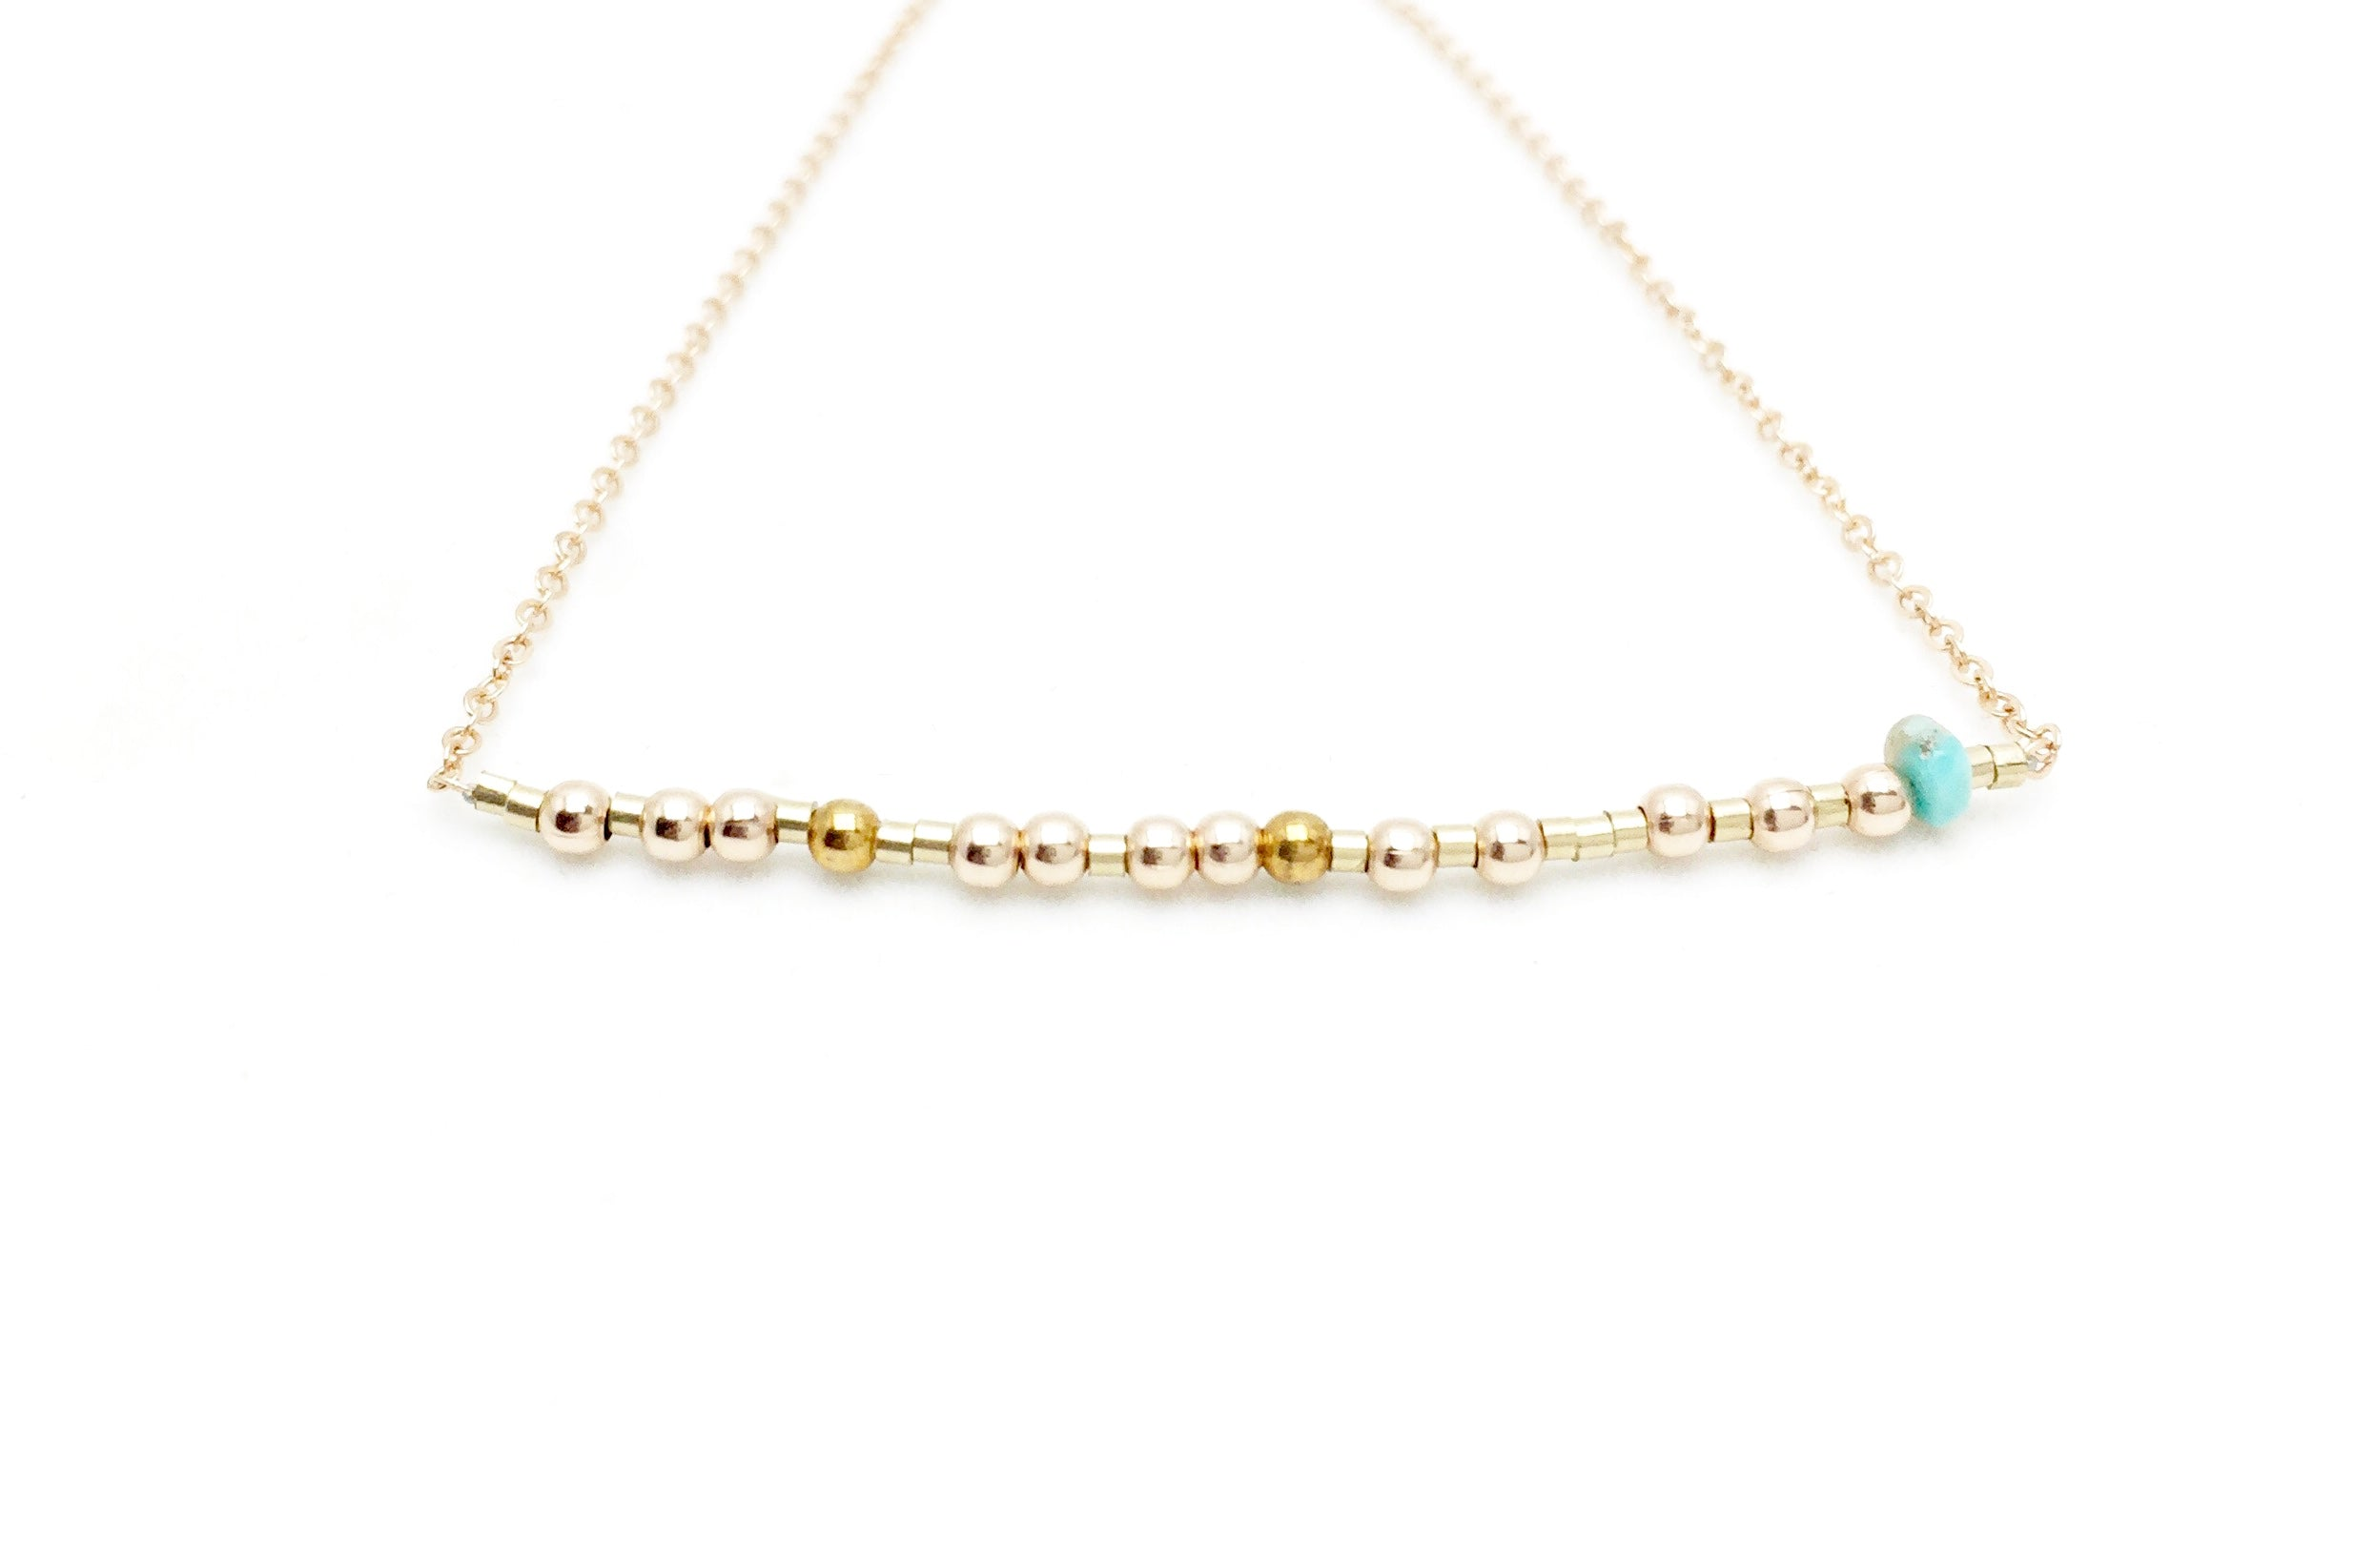 CAPRICORN Morse Code Necklace